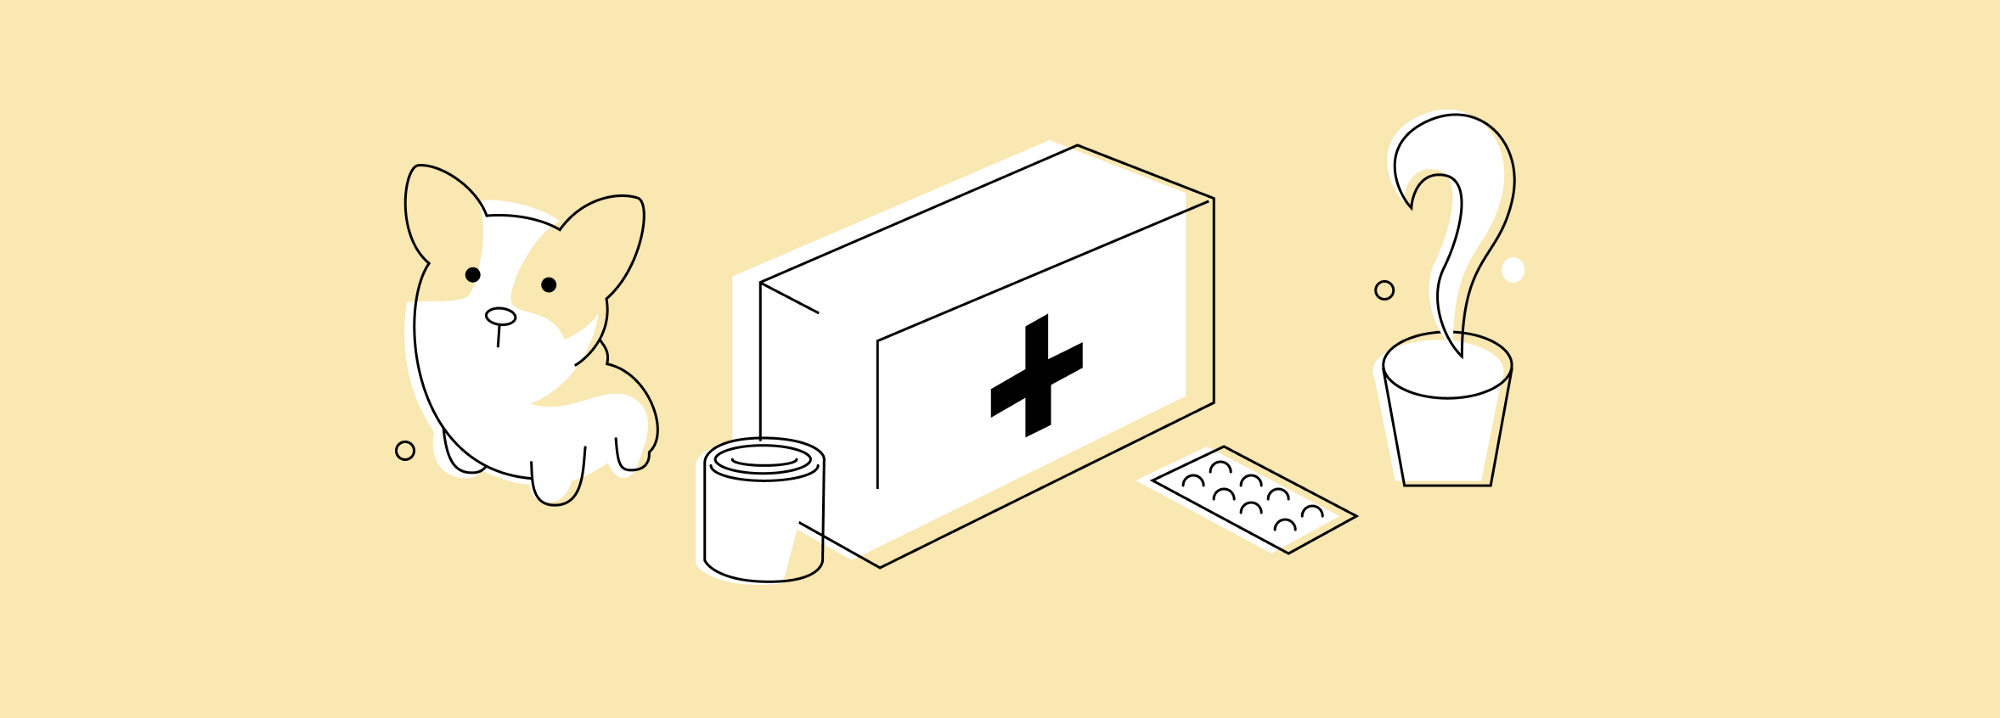 Cover image showing an illustration of a first aid kit